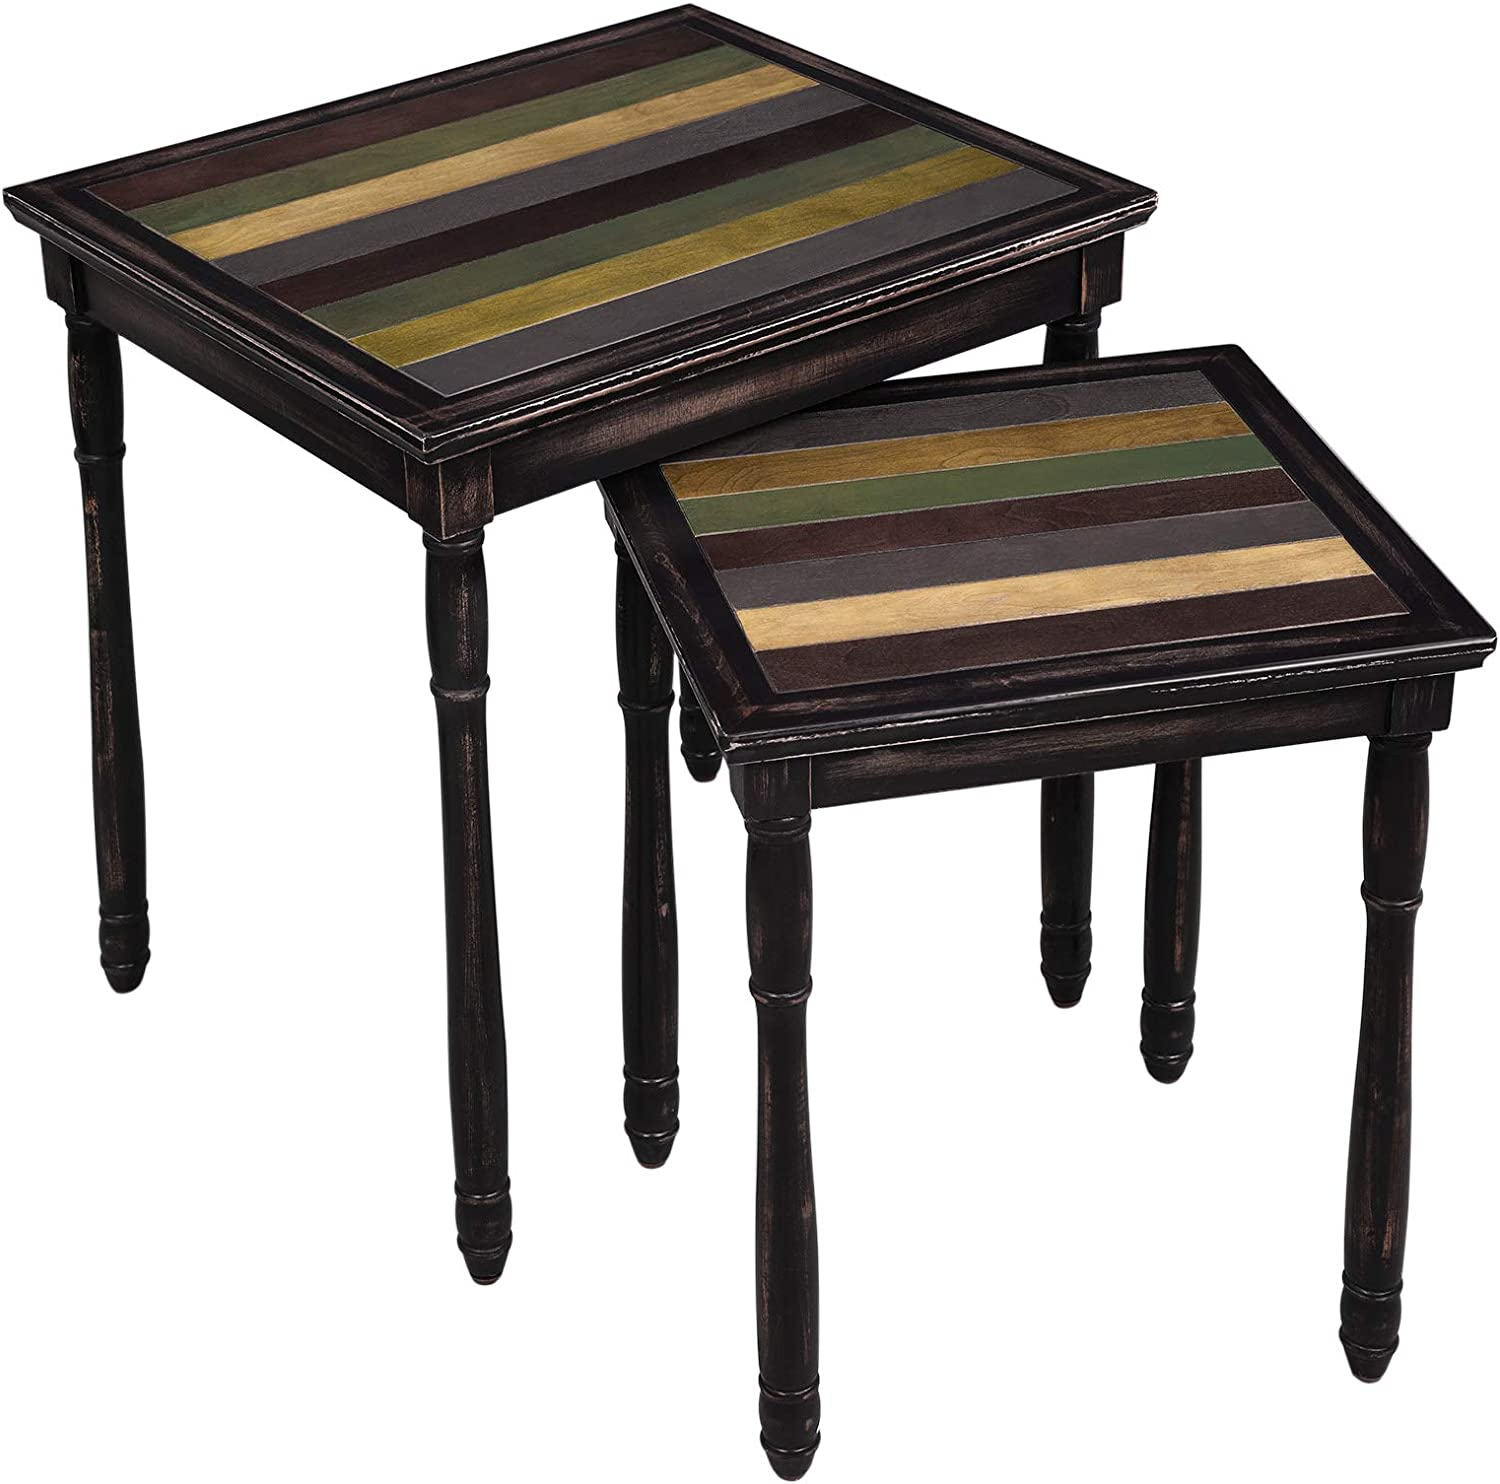 VASAGLE Nesting End Tables with colorful Storage Shelf, Pair of 2 Coffee Tables with Solid Wood Legs, Easy to Assemble, Side Table for Living Room, Country Brown ULNT01GL